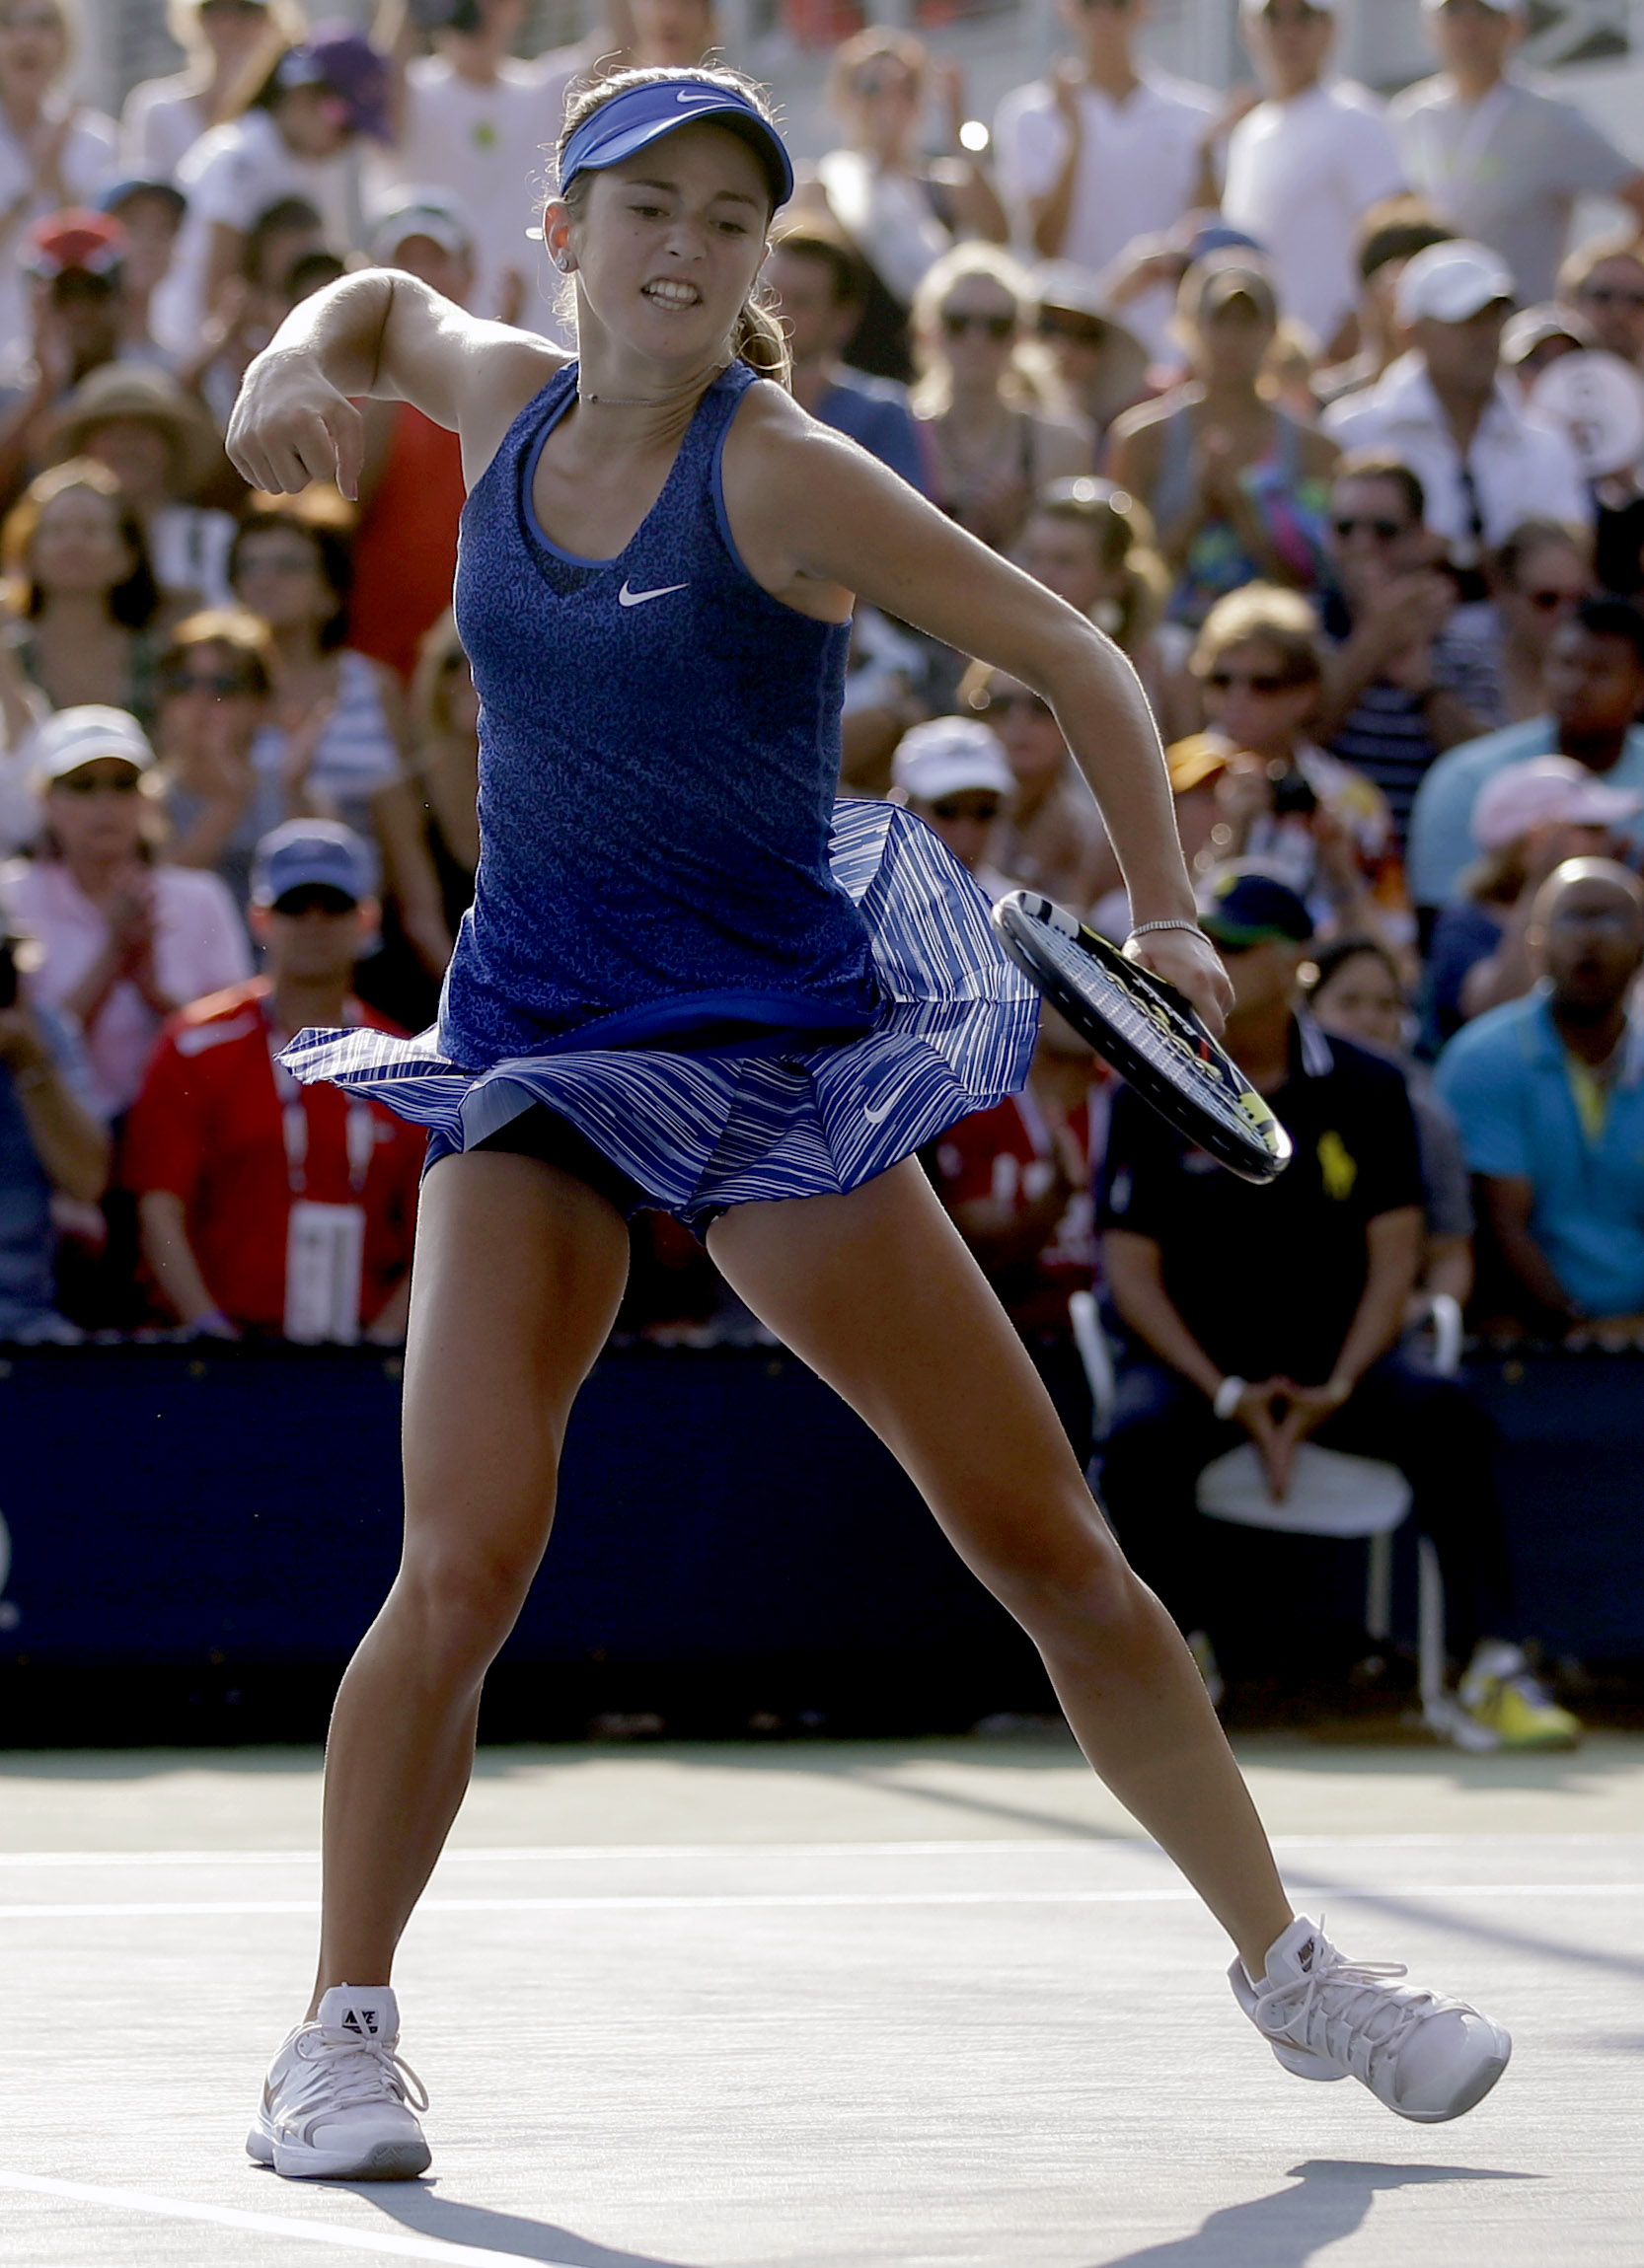 aptopix_2014_us_open_tennis273558178891_r4942.jpg